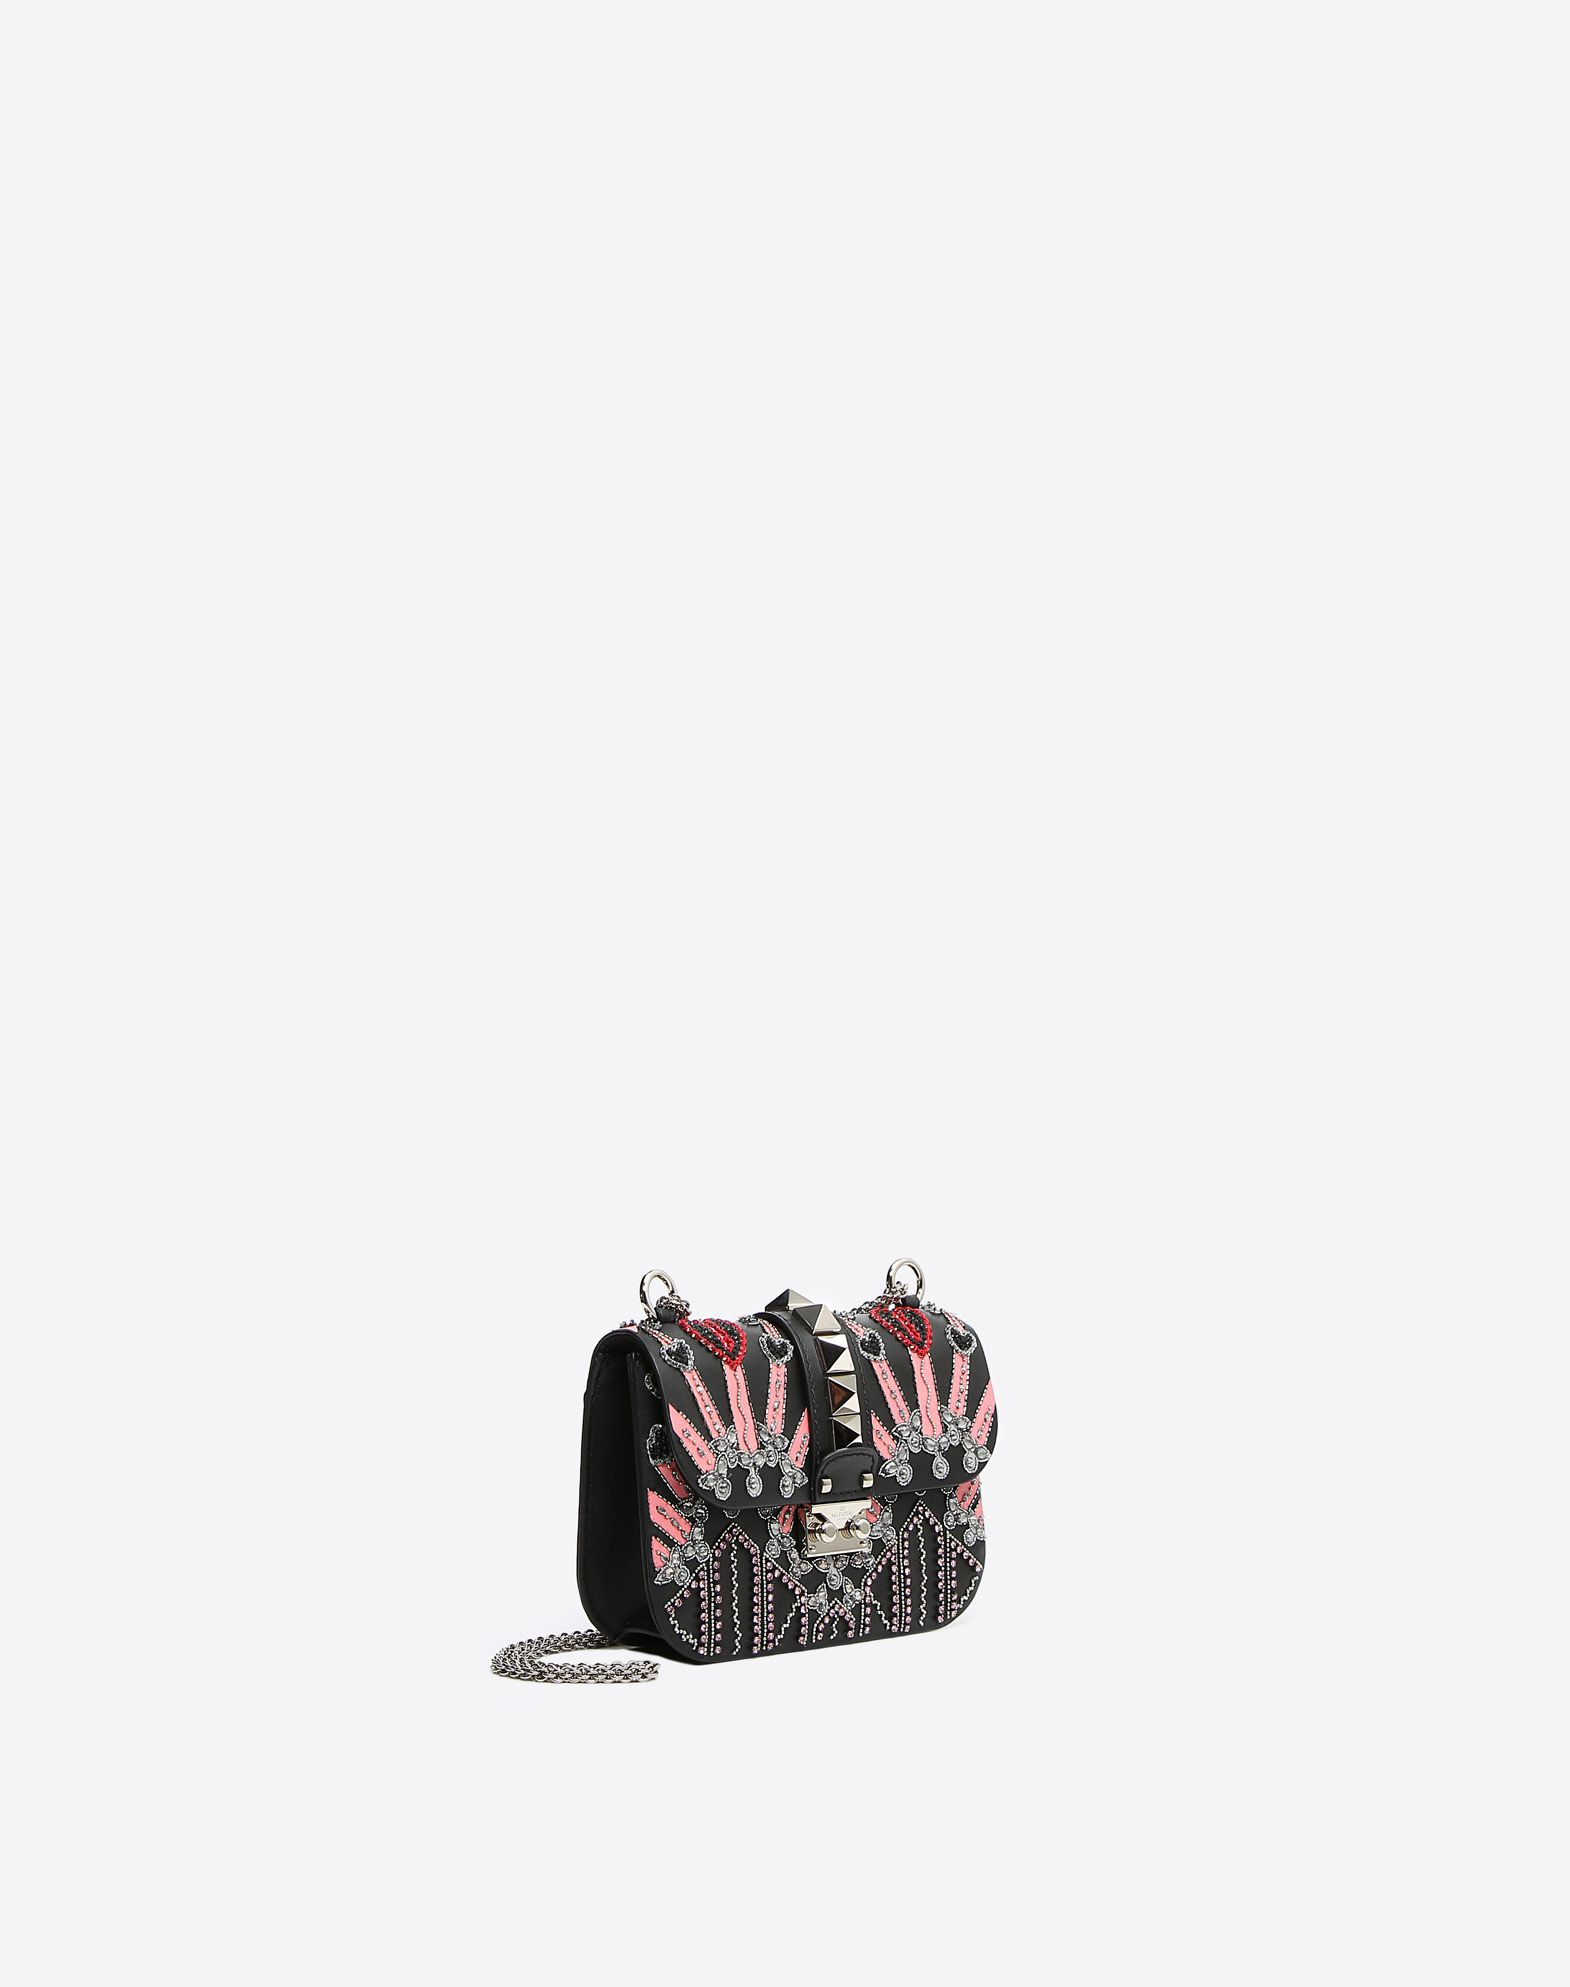 VALENTINO Logo Contrasting applications Two-tone pattern Framed closure External pocket Internal pockets Metallic straps  45344229uv